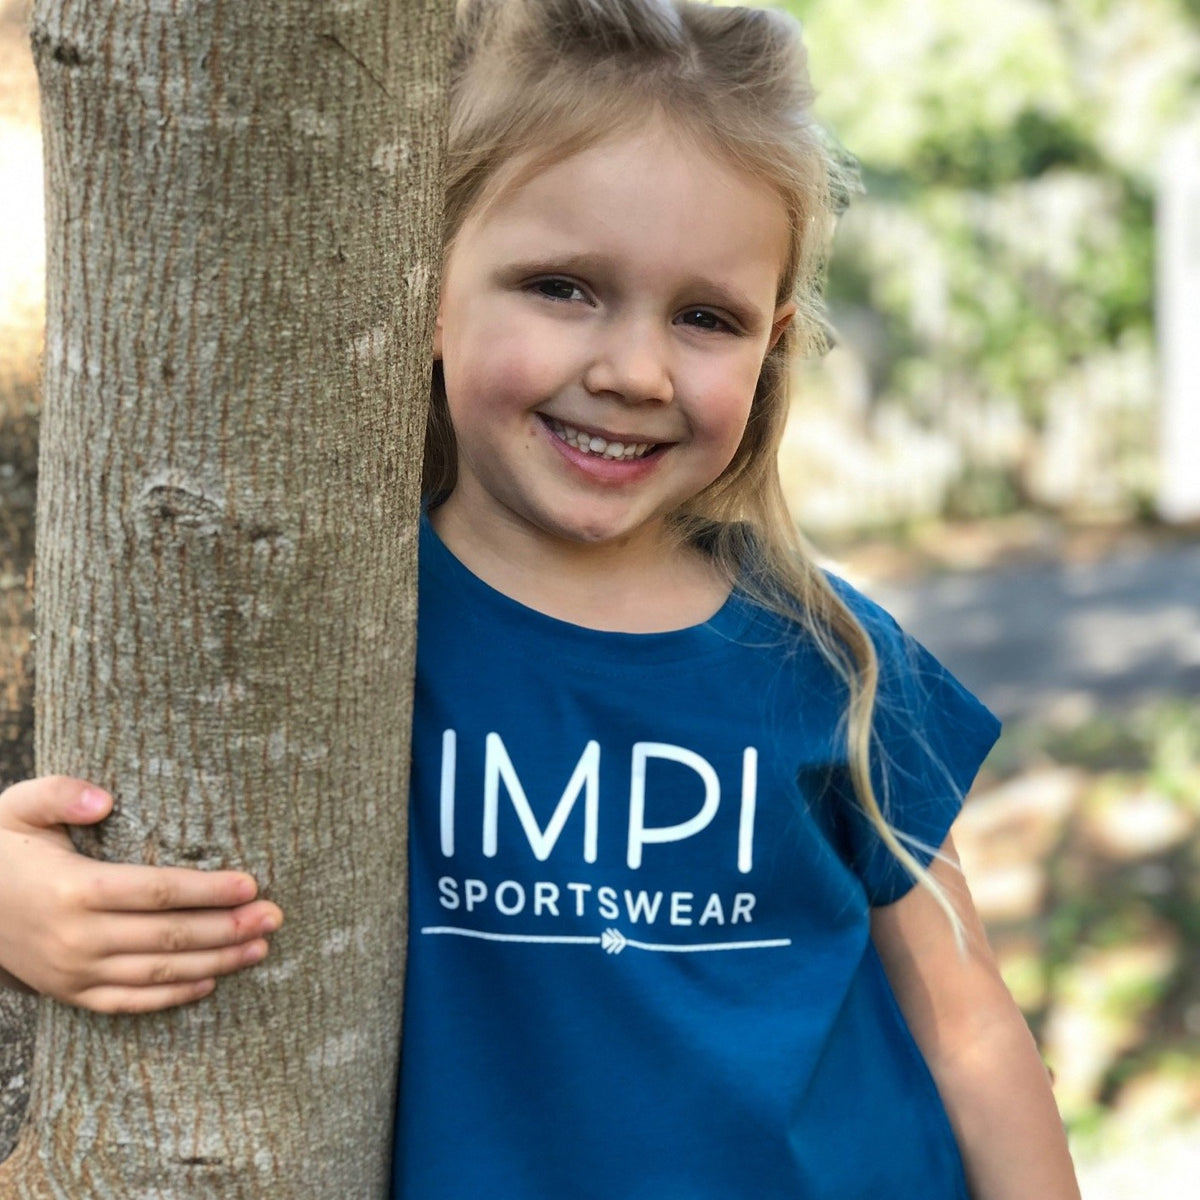 LITTLE IMPI  Girl's Tee - Blue